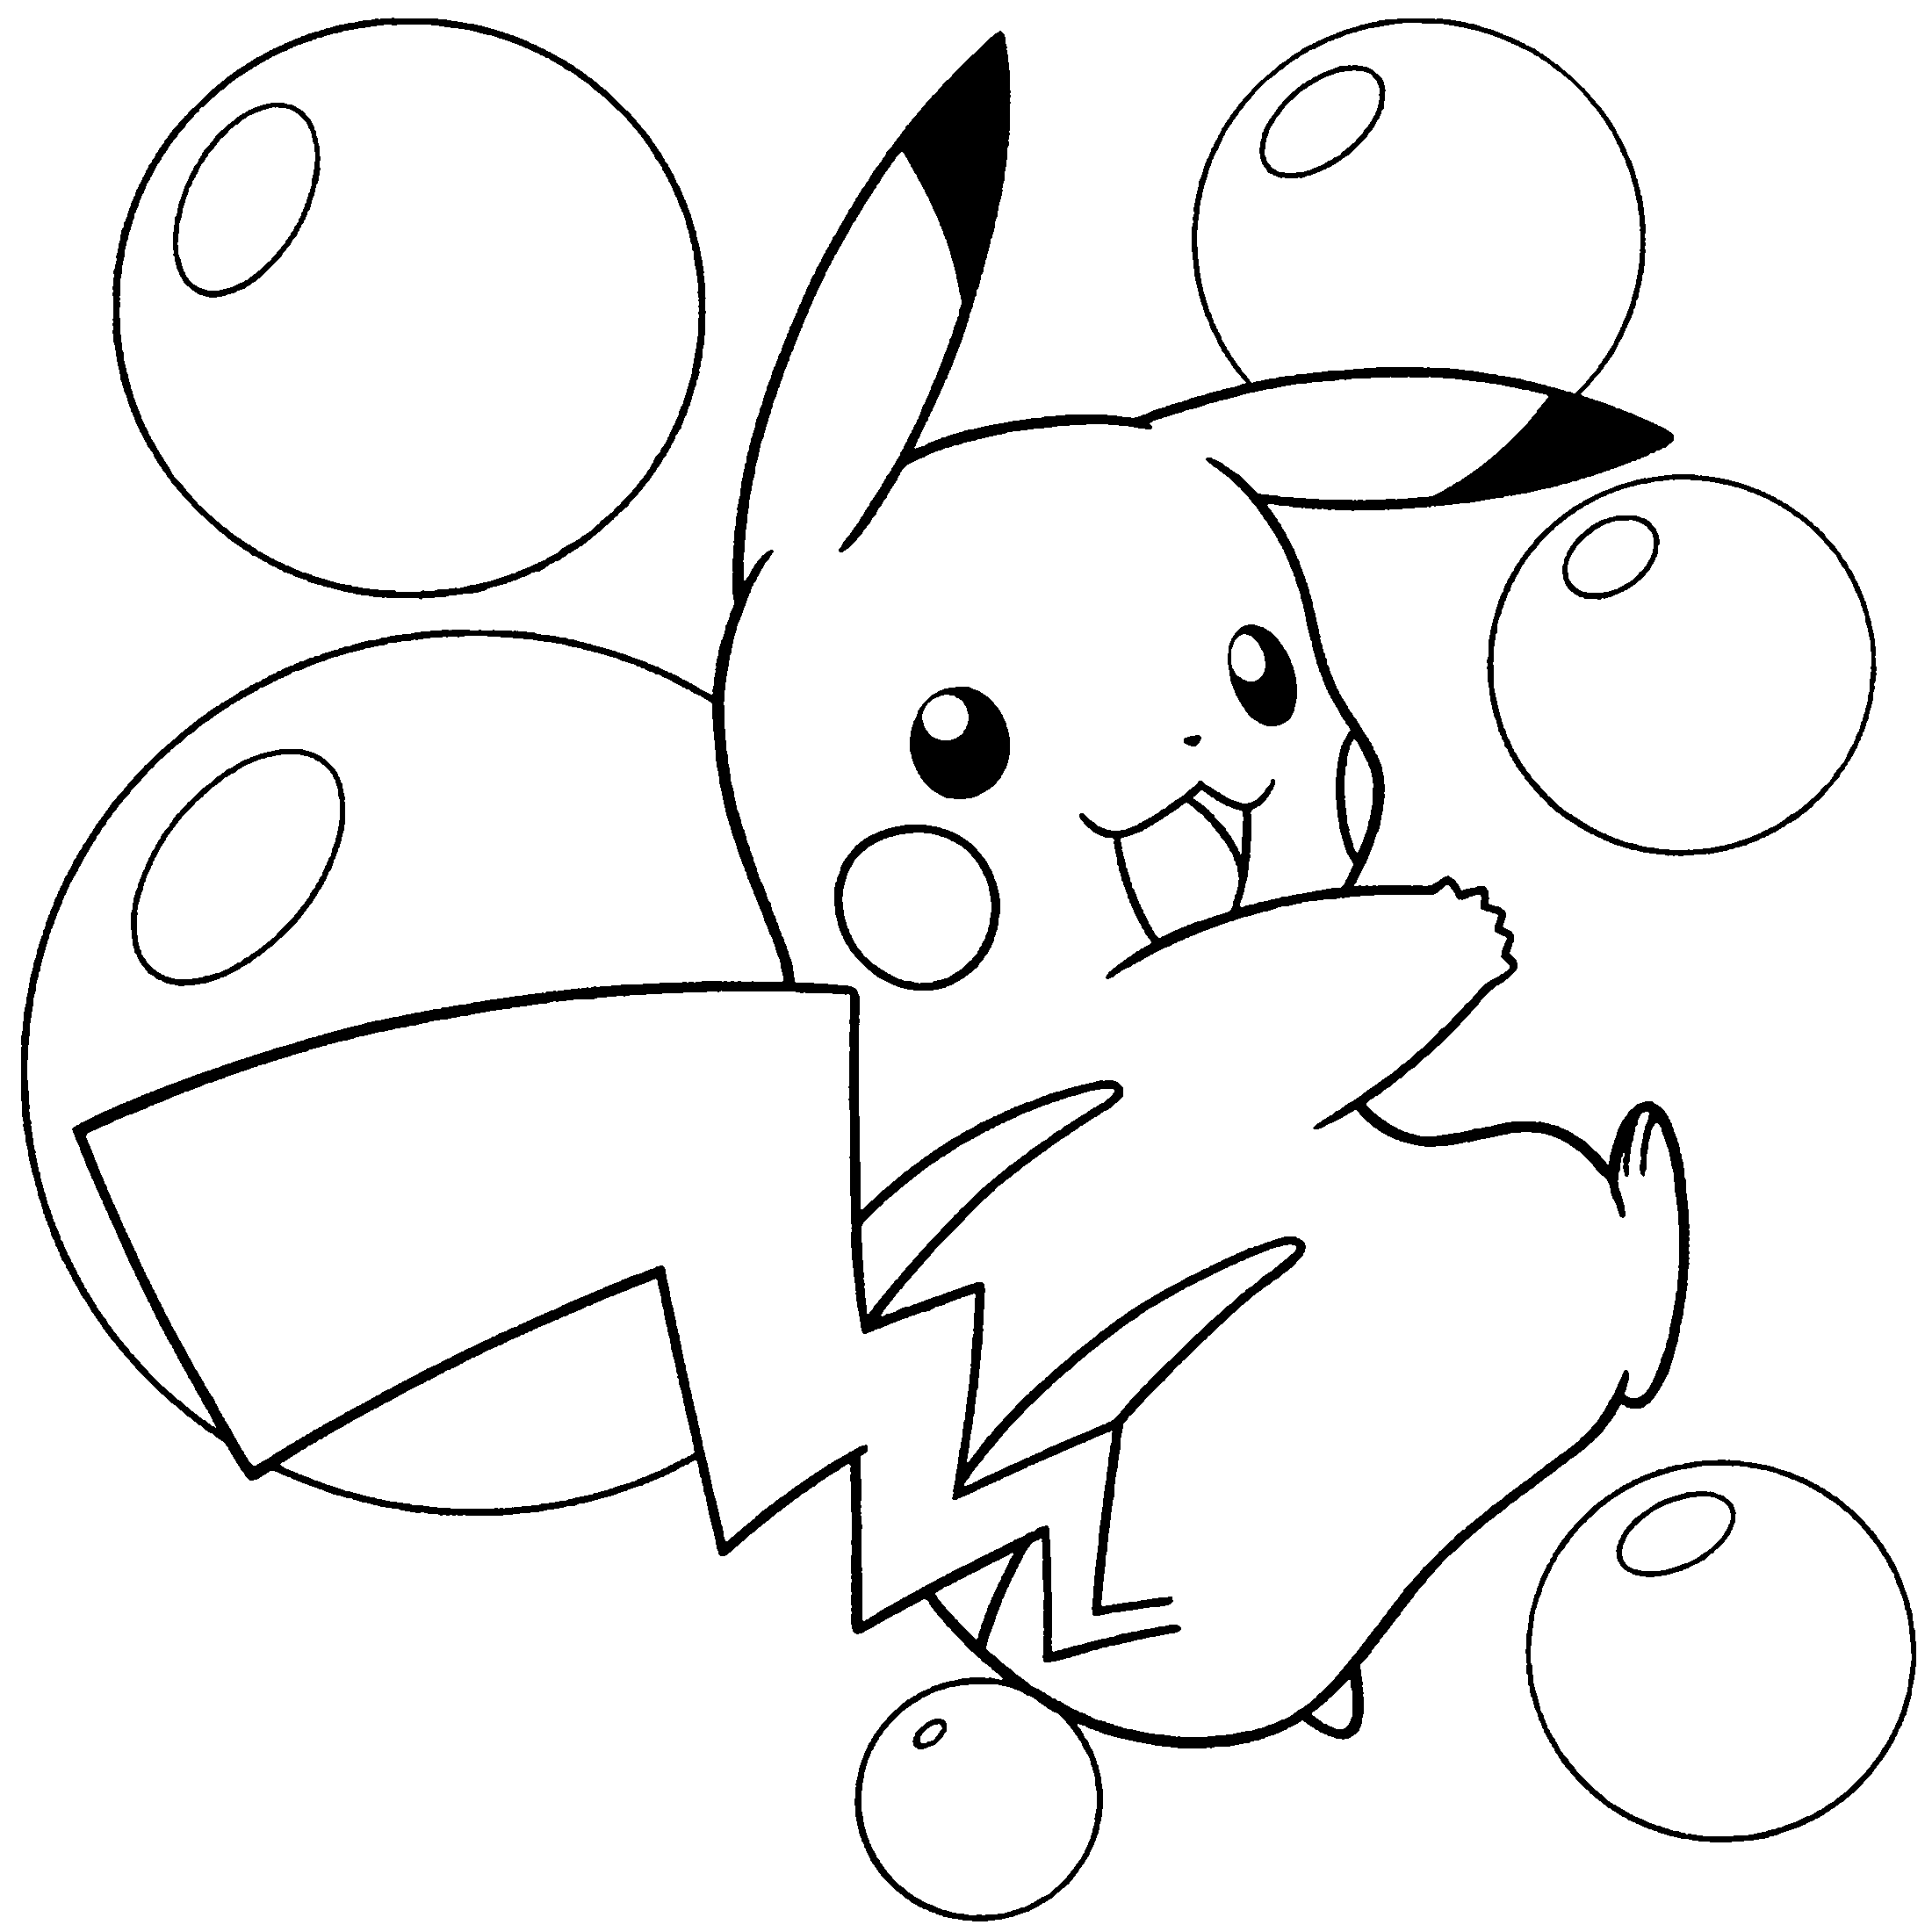 Pokemon Drawing Online at GetDrawings.com | Free for personal use ...